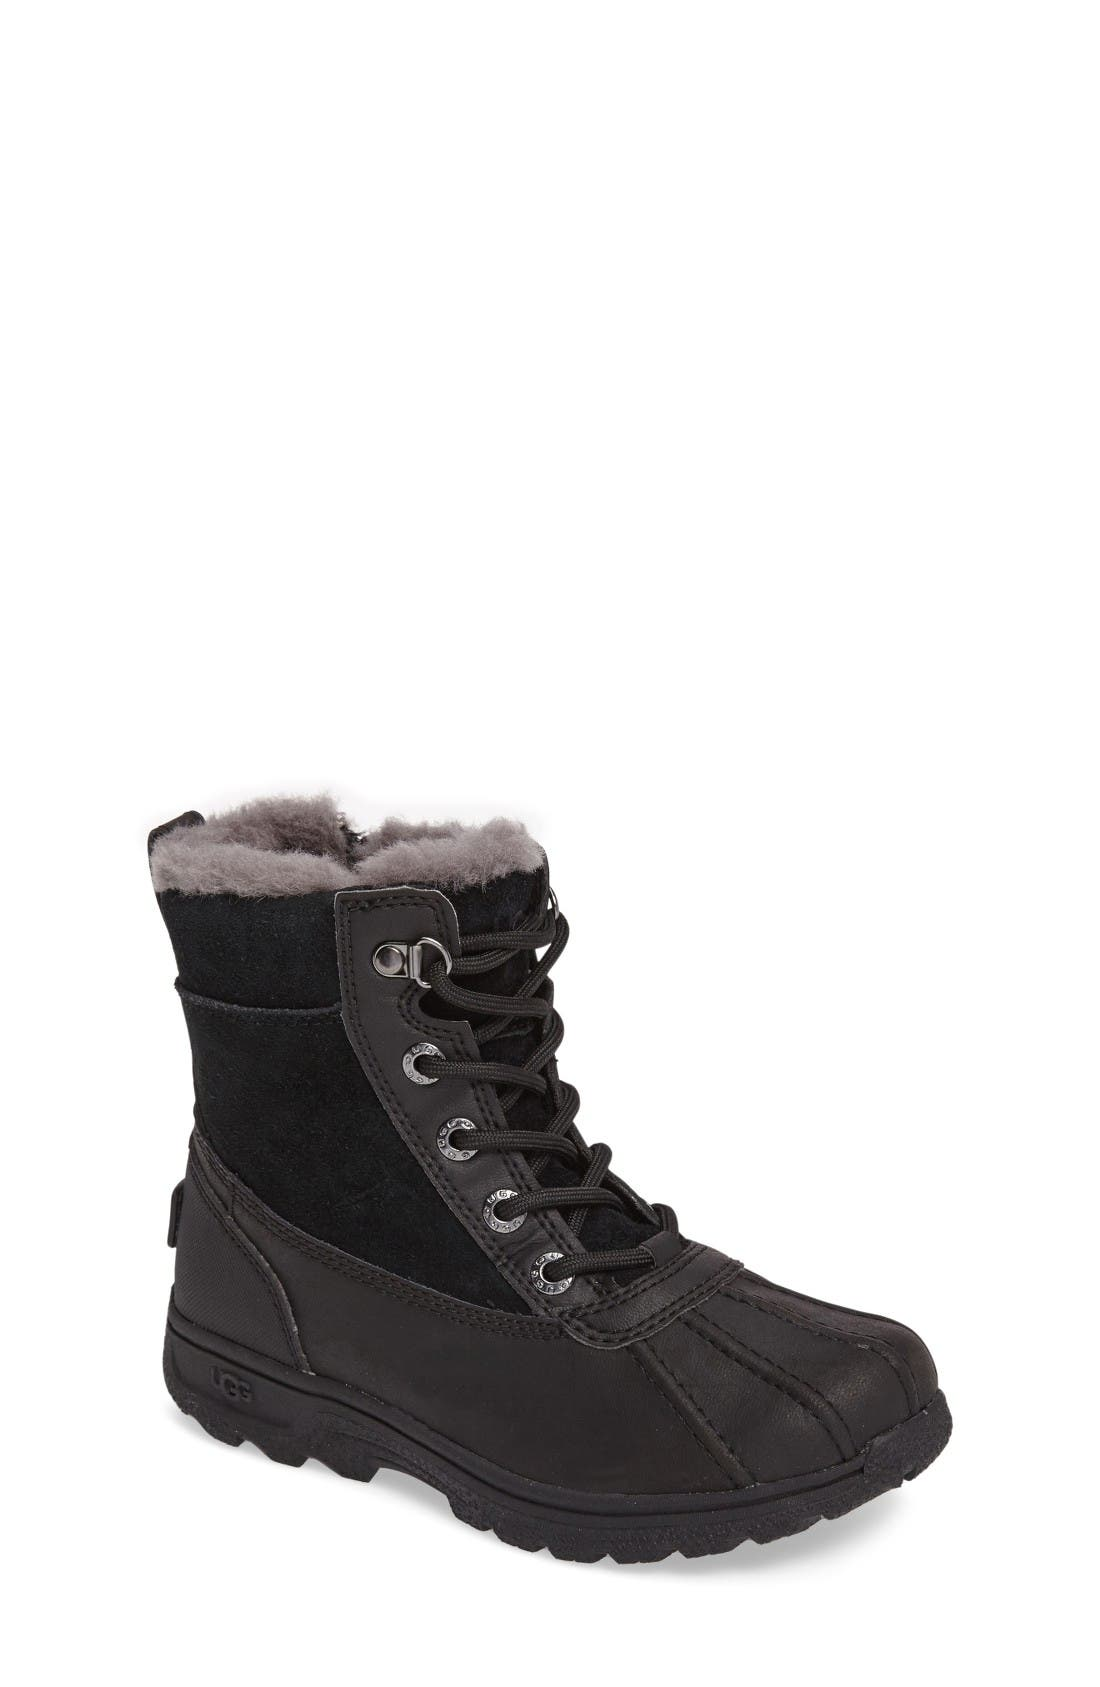 Alternate Image 1 Selected - UGG® Leggero Boot (Toddler, Little Kid & Big Kid)